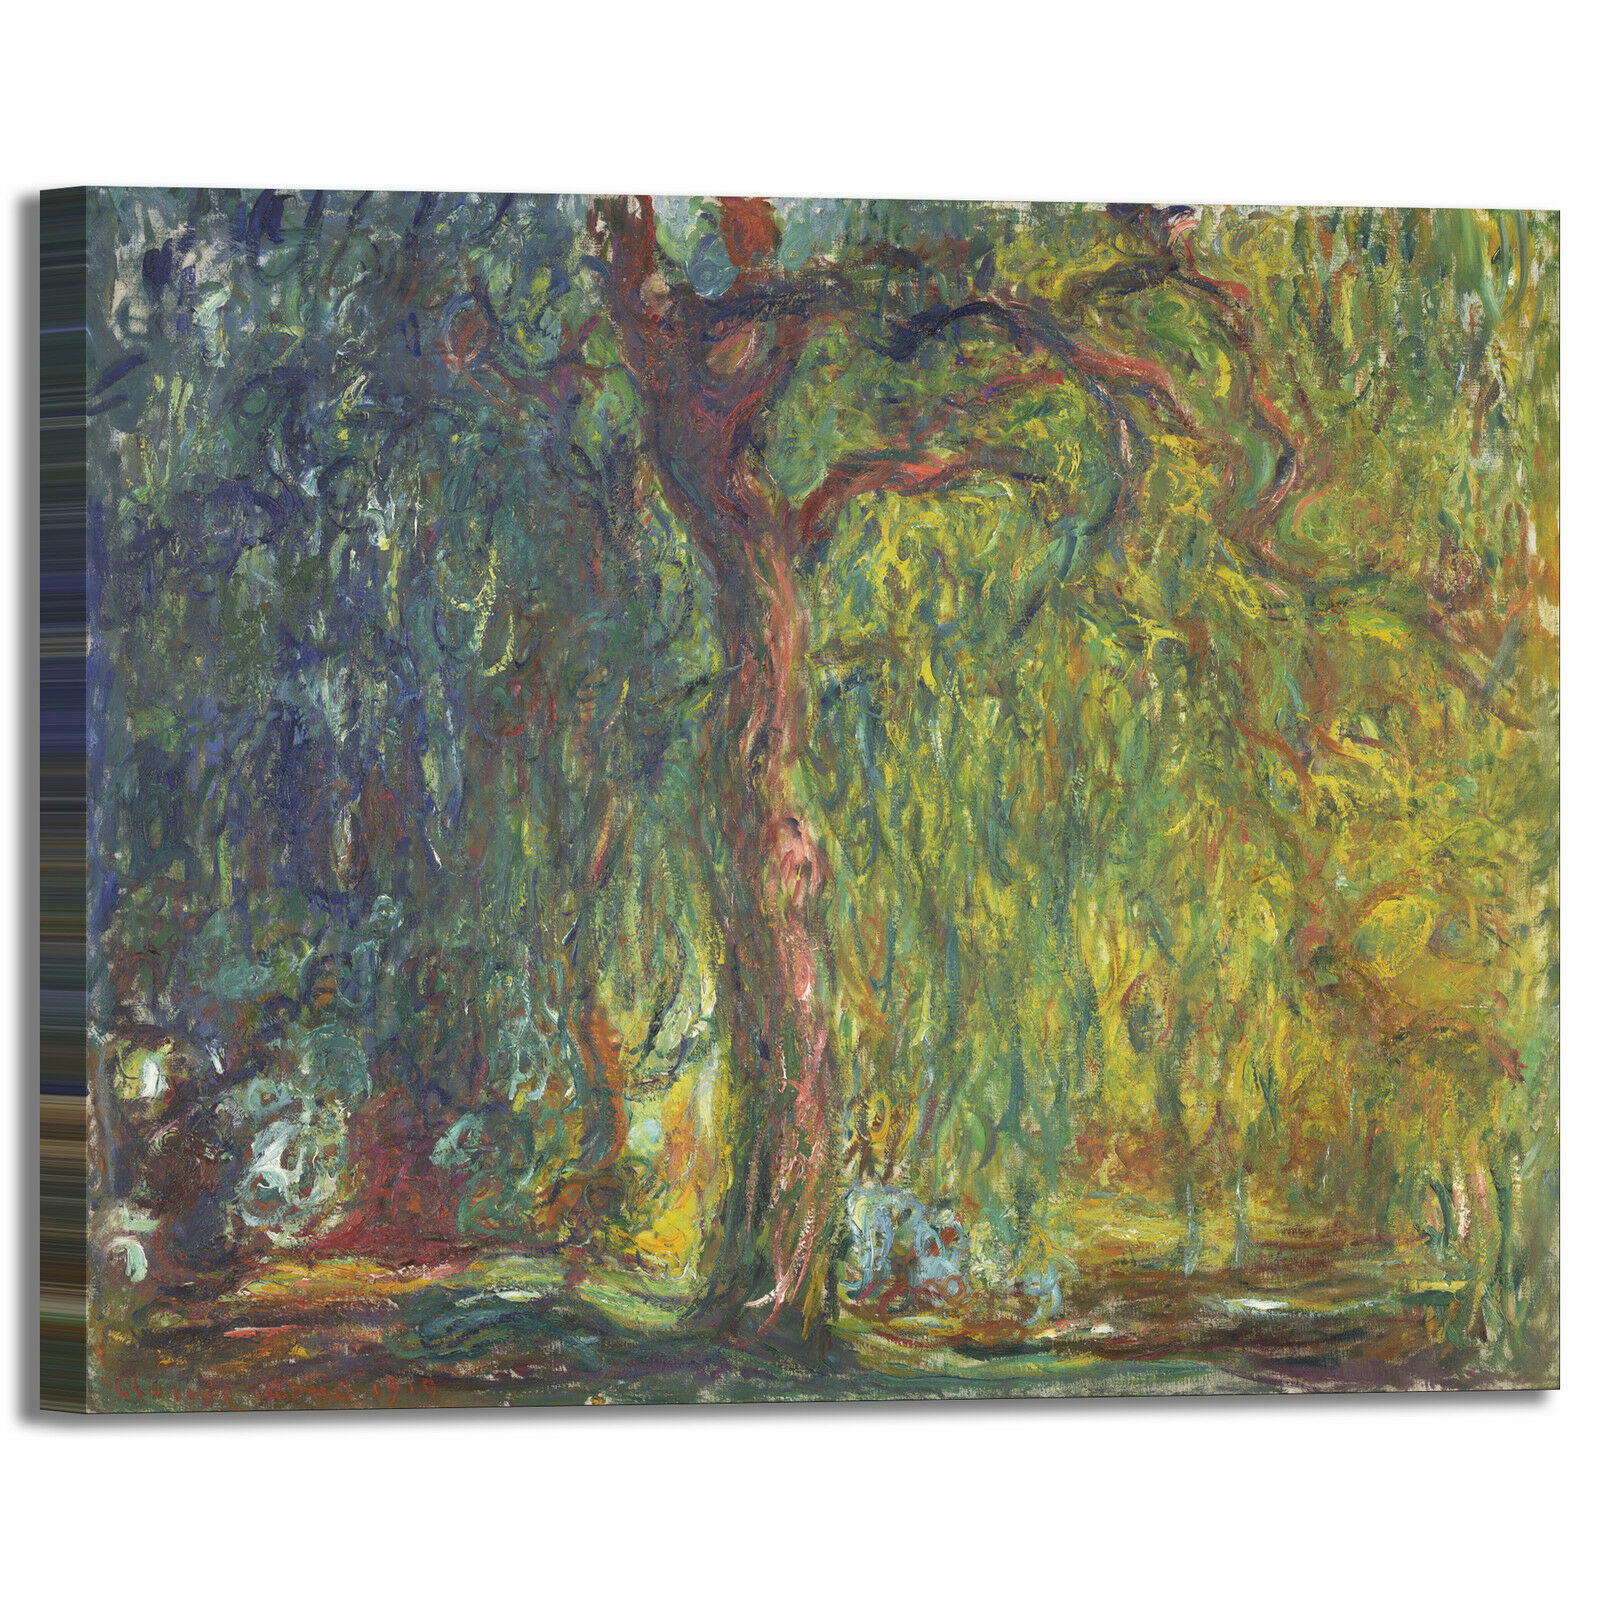 Monet salice piangente arRouge design quadro stampa tela dipinto telaio arRouge piangente o casa 9991c7